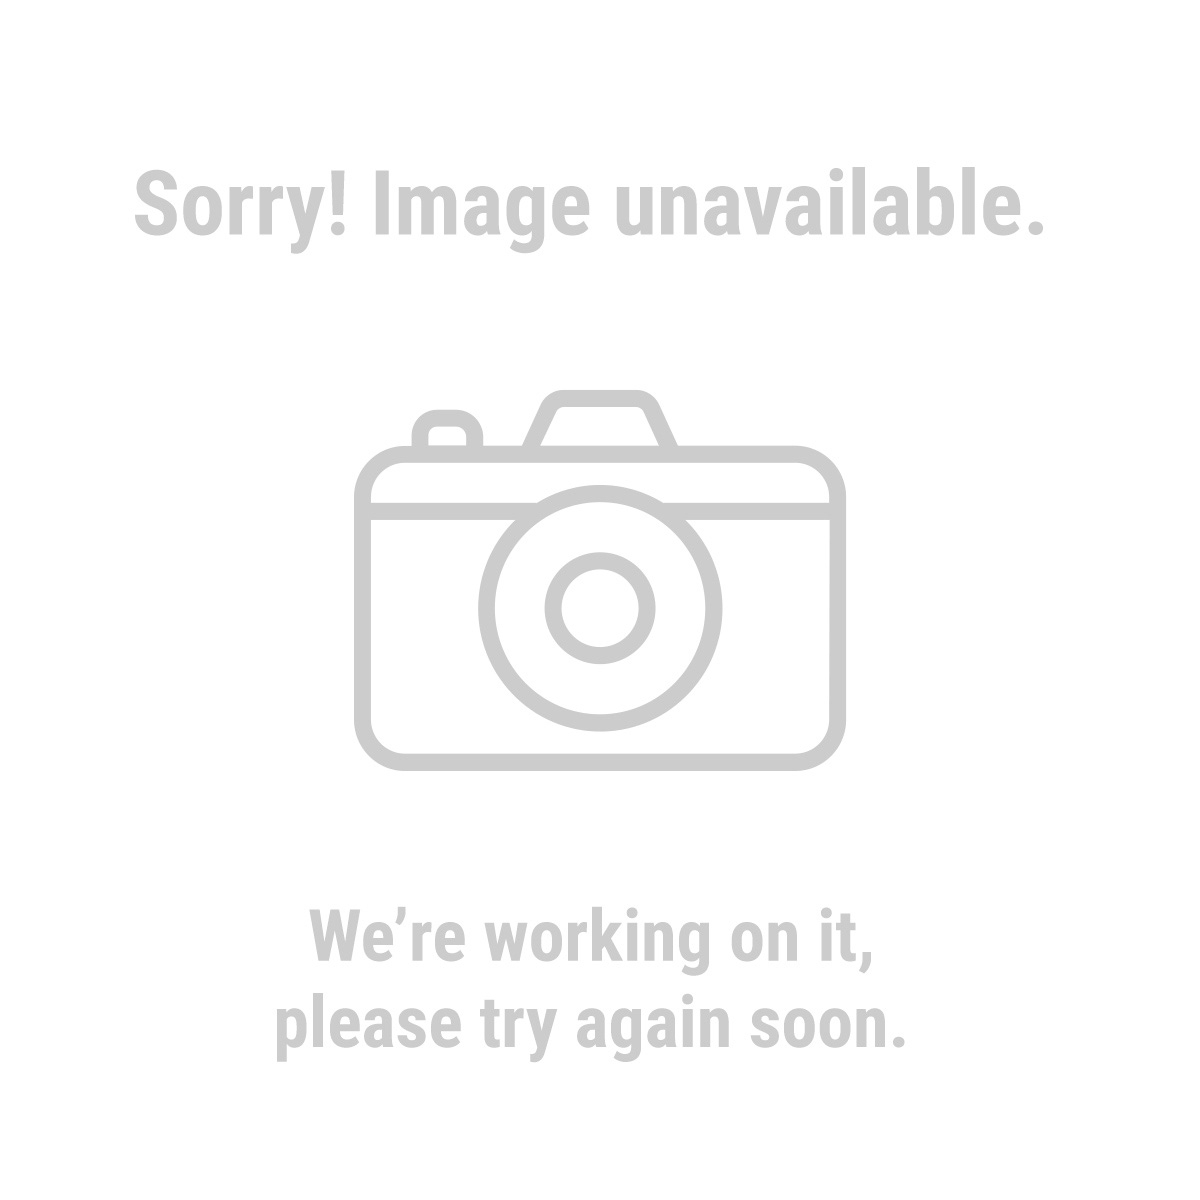 Haul-Master® 63100 12 Volt Magnetic Towing Light Kit